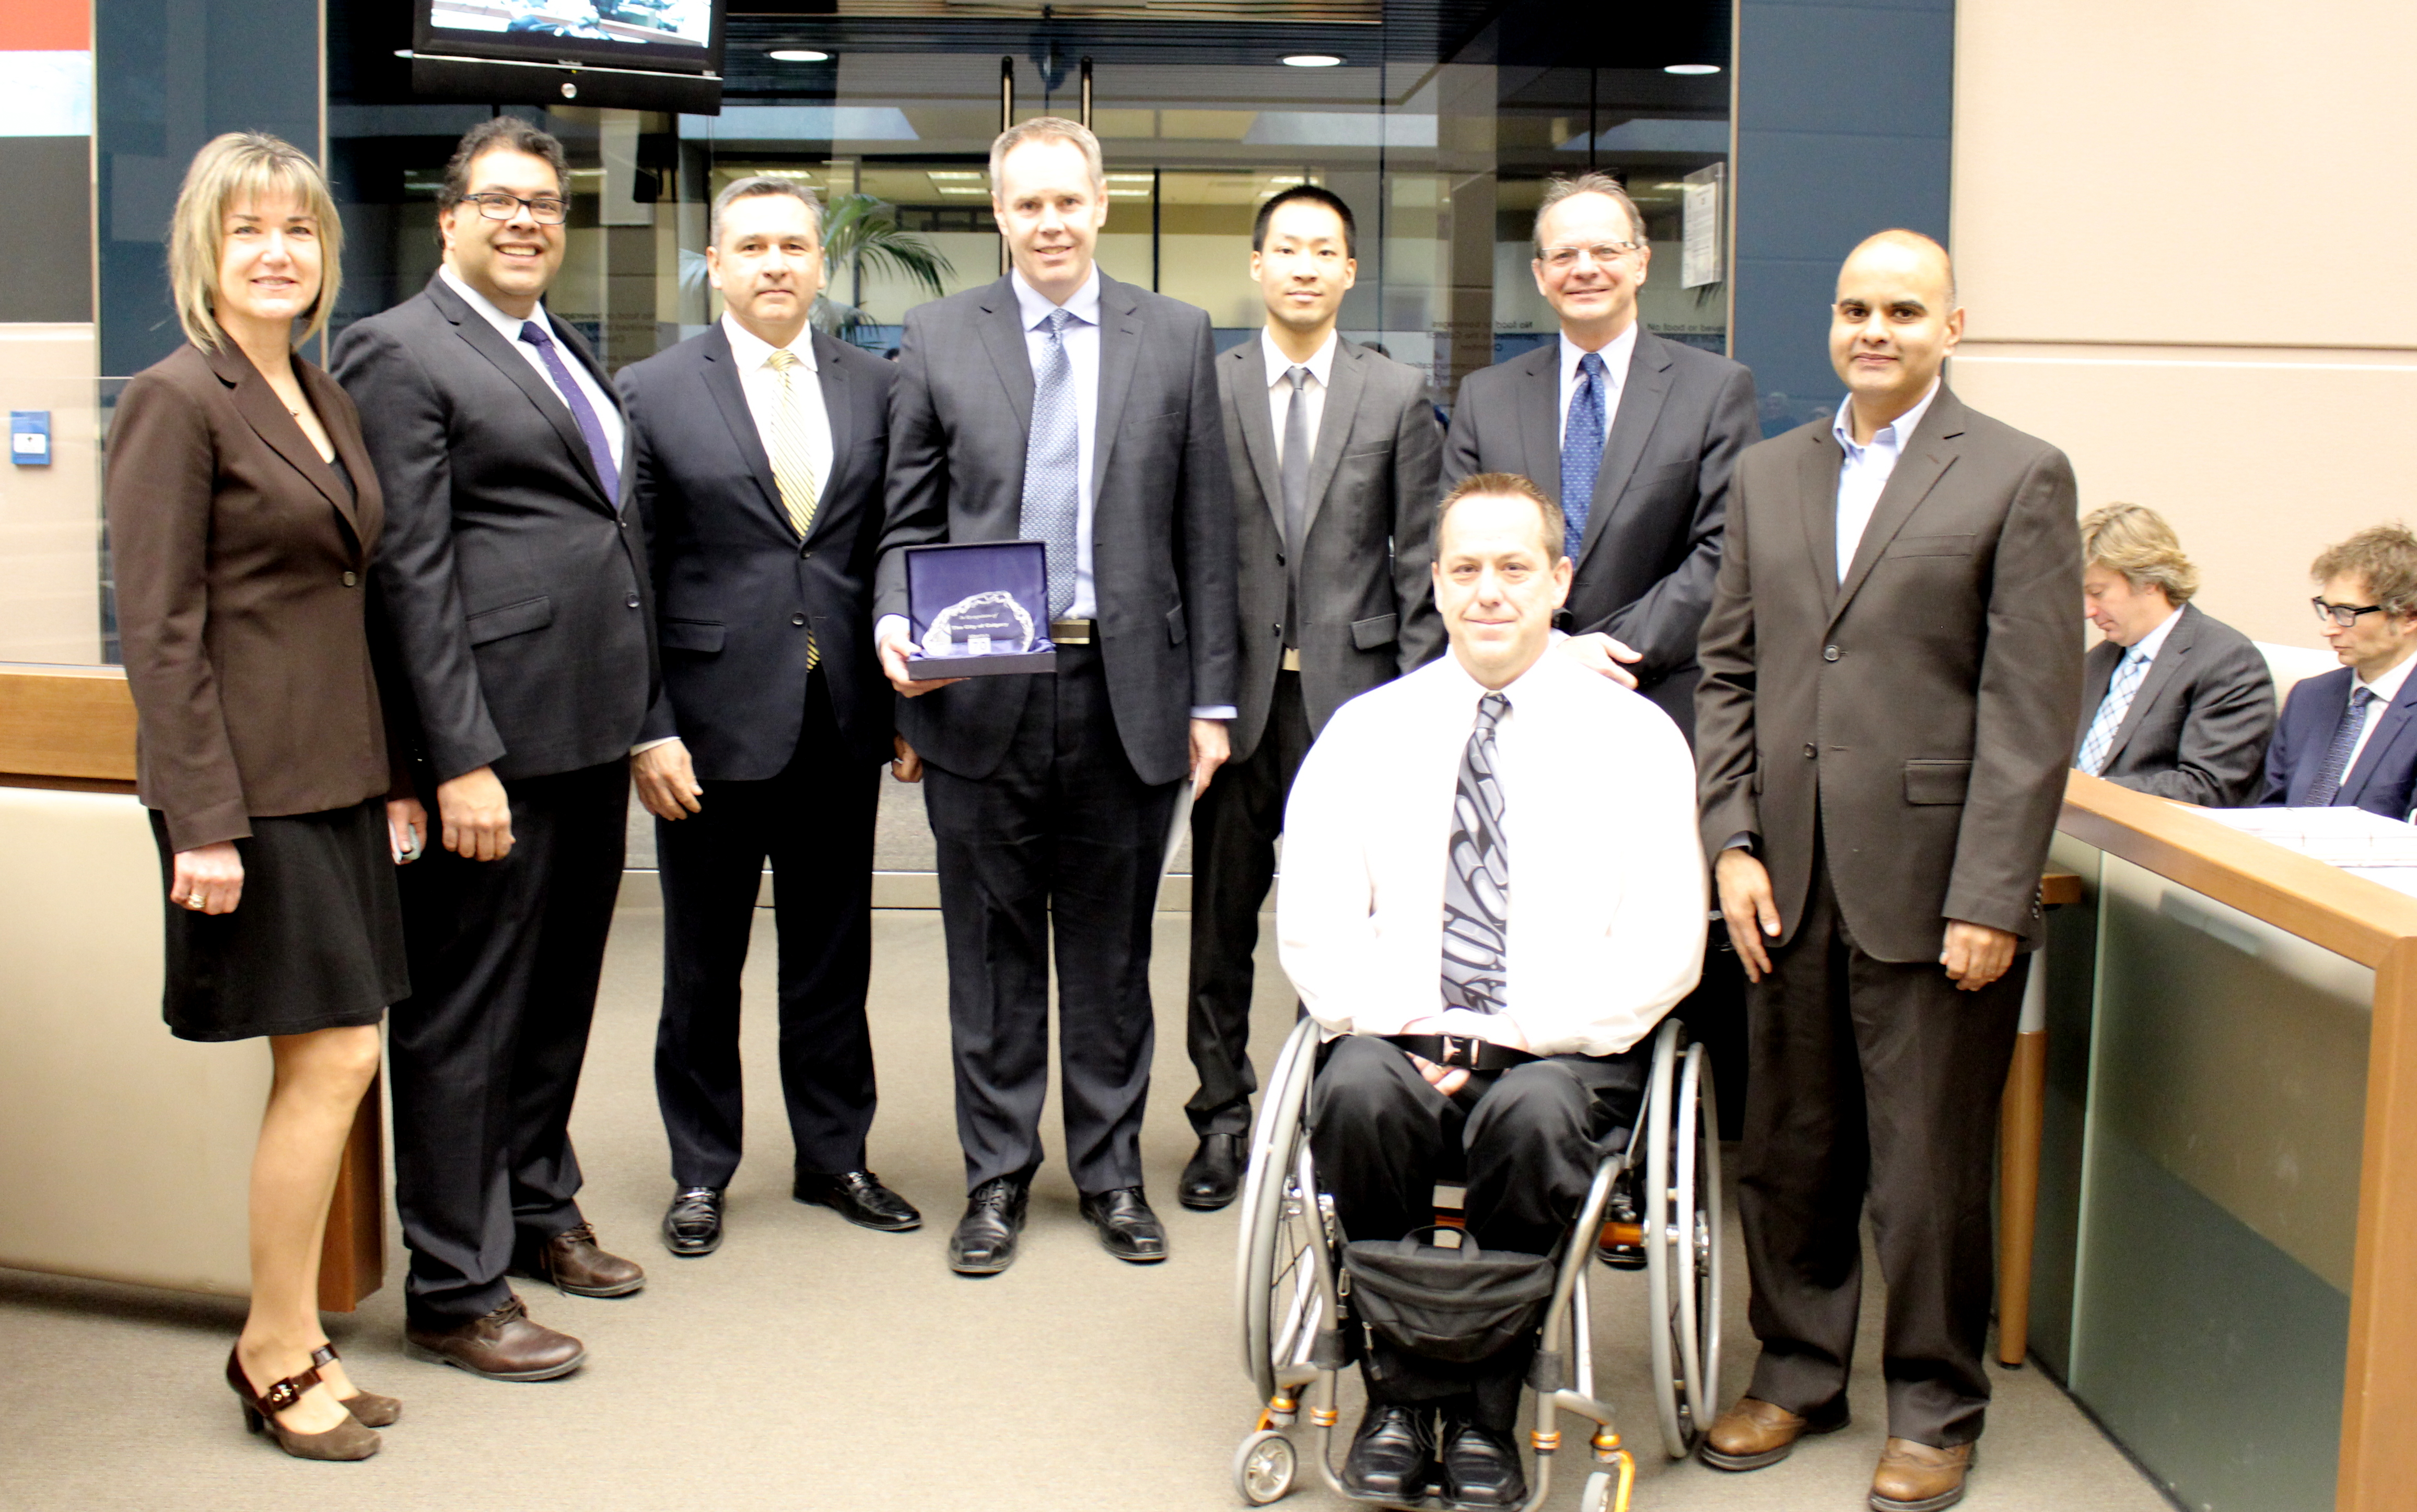 Image: Mayor Naheed Nenshi and City Manager Jeff Fielding with the Top Employers project team - Left to Right: Teresa Steinhauer, Mark Lavallee, Bill Oakes, Jeff Louis, David Fletcher, Ashu Gandhi/ The City of Calgary